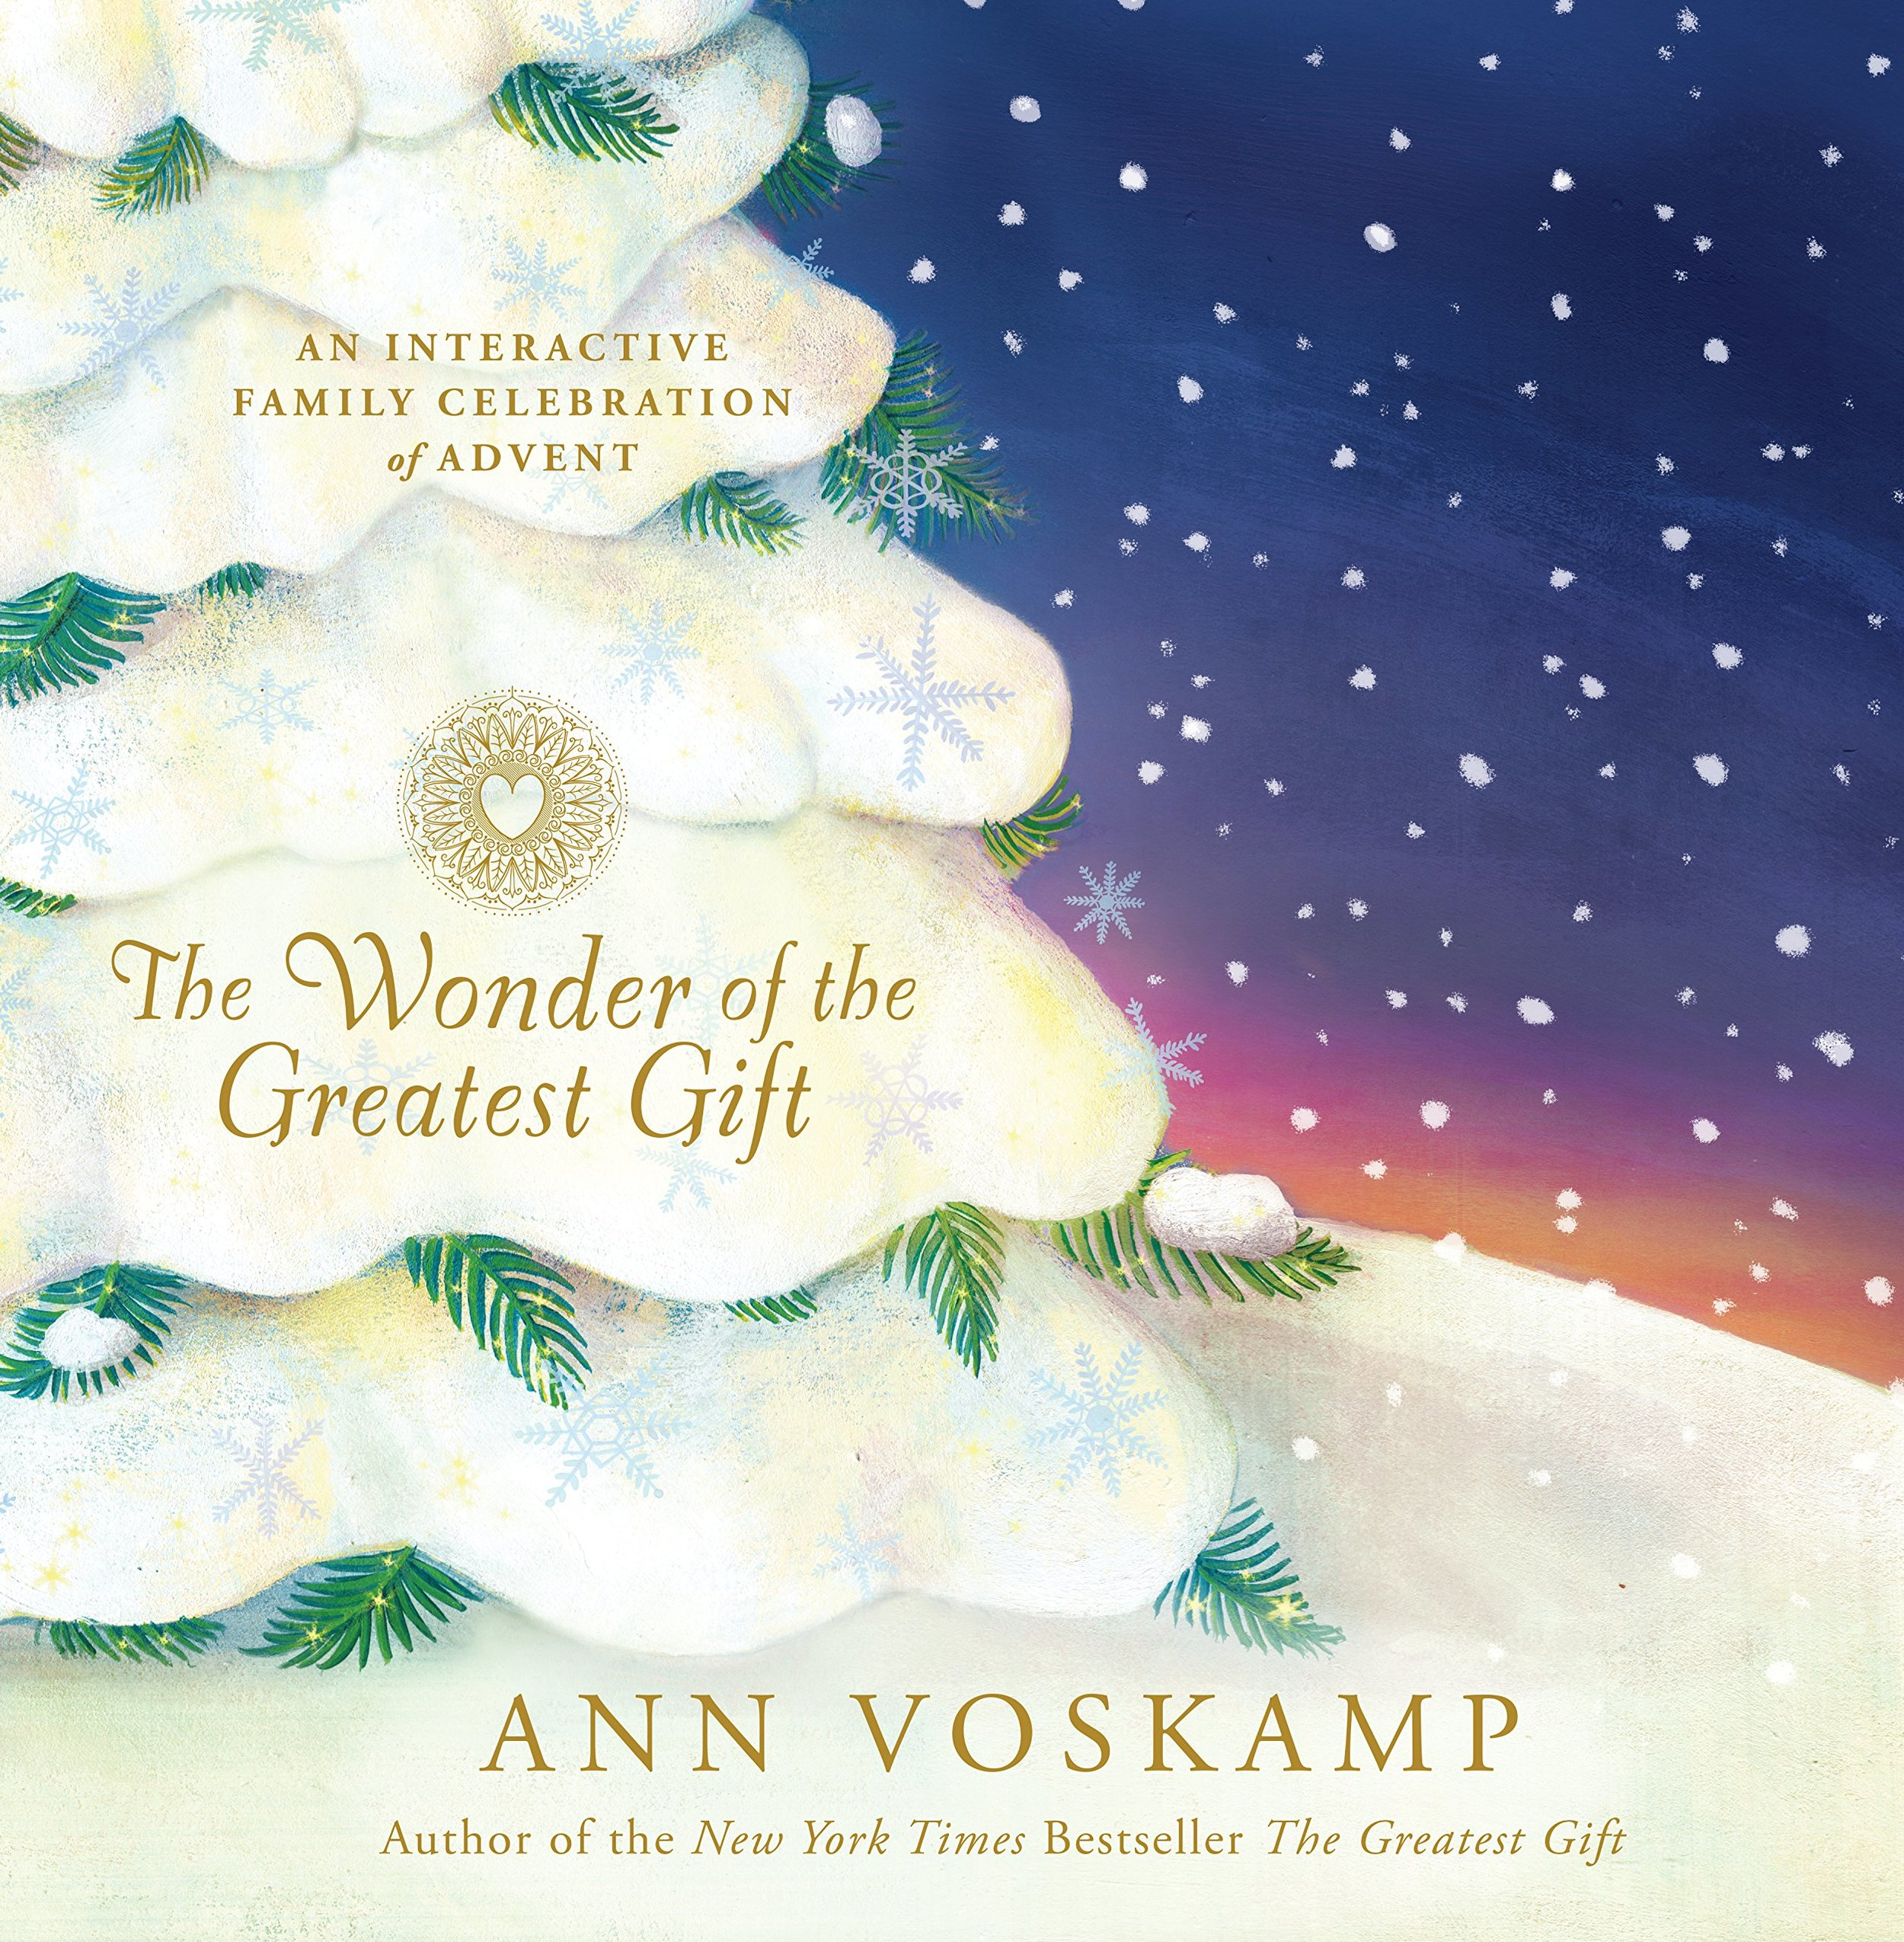 Ann Voskamp The Wonder of the Greatest Gift.1.jpg